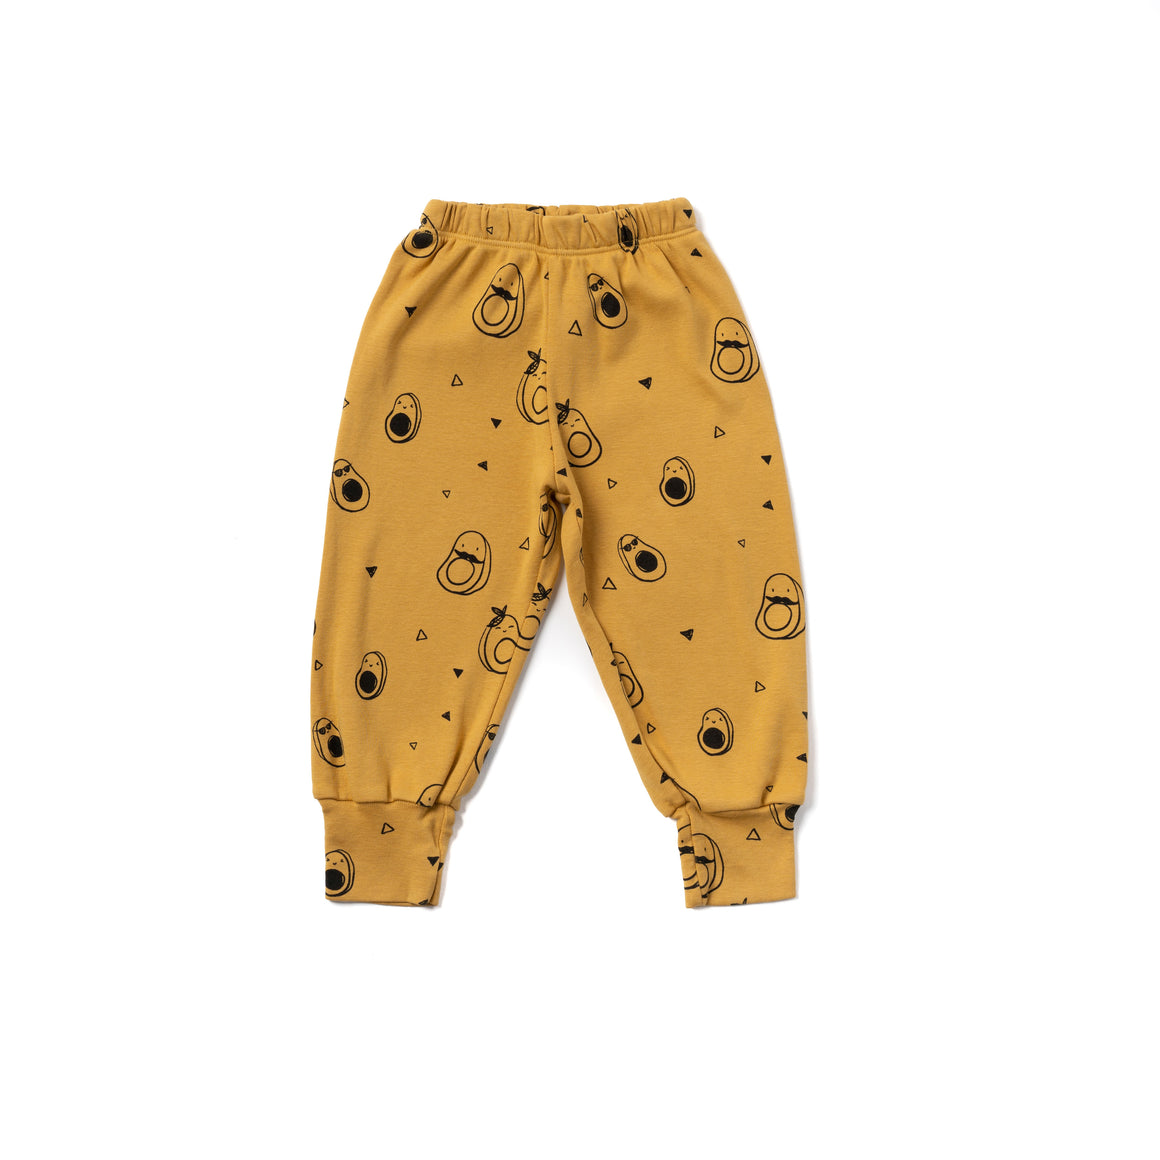 Avocado Print Bubble Pants, Golden